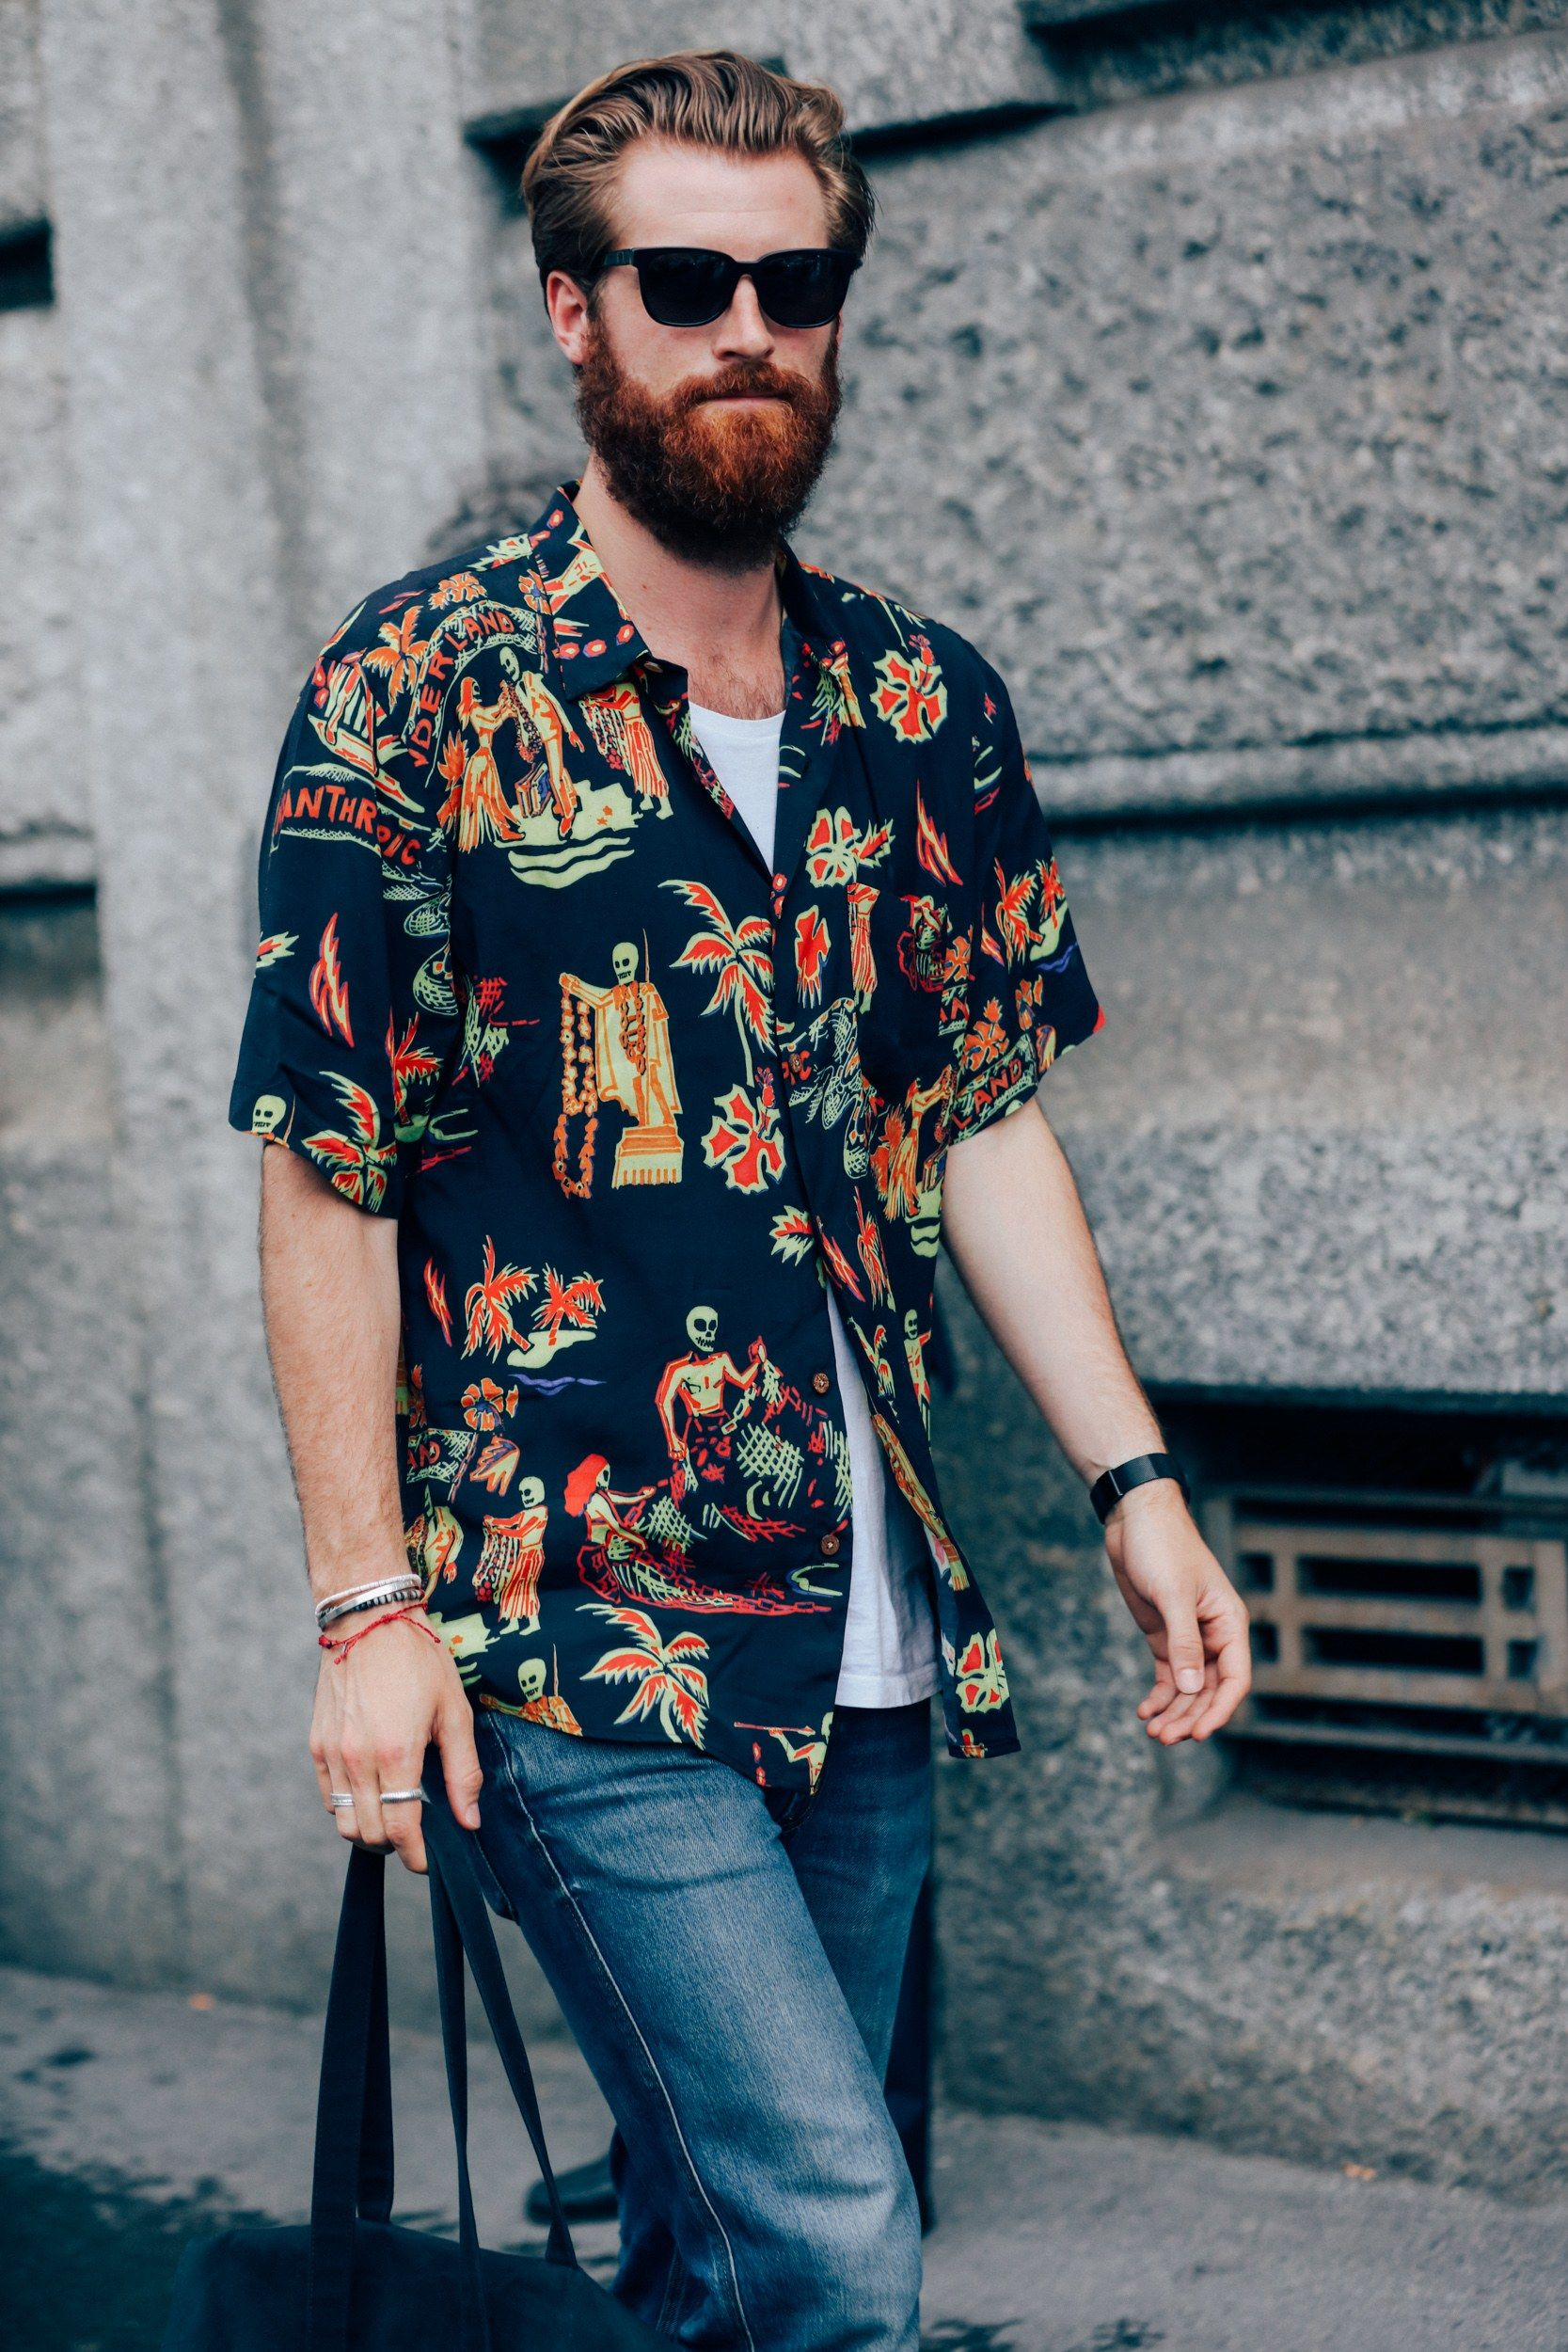 21e44257d406 The Best Street Style from the Milan Fashion Week's Menswear Shows Photos |  GQ